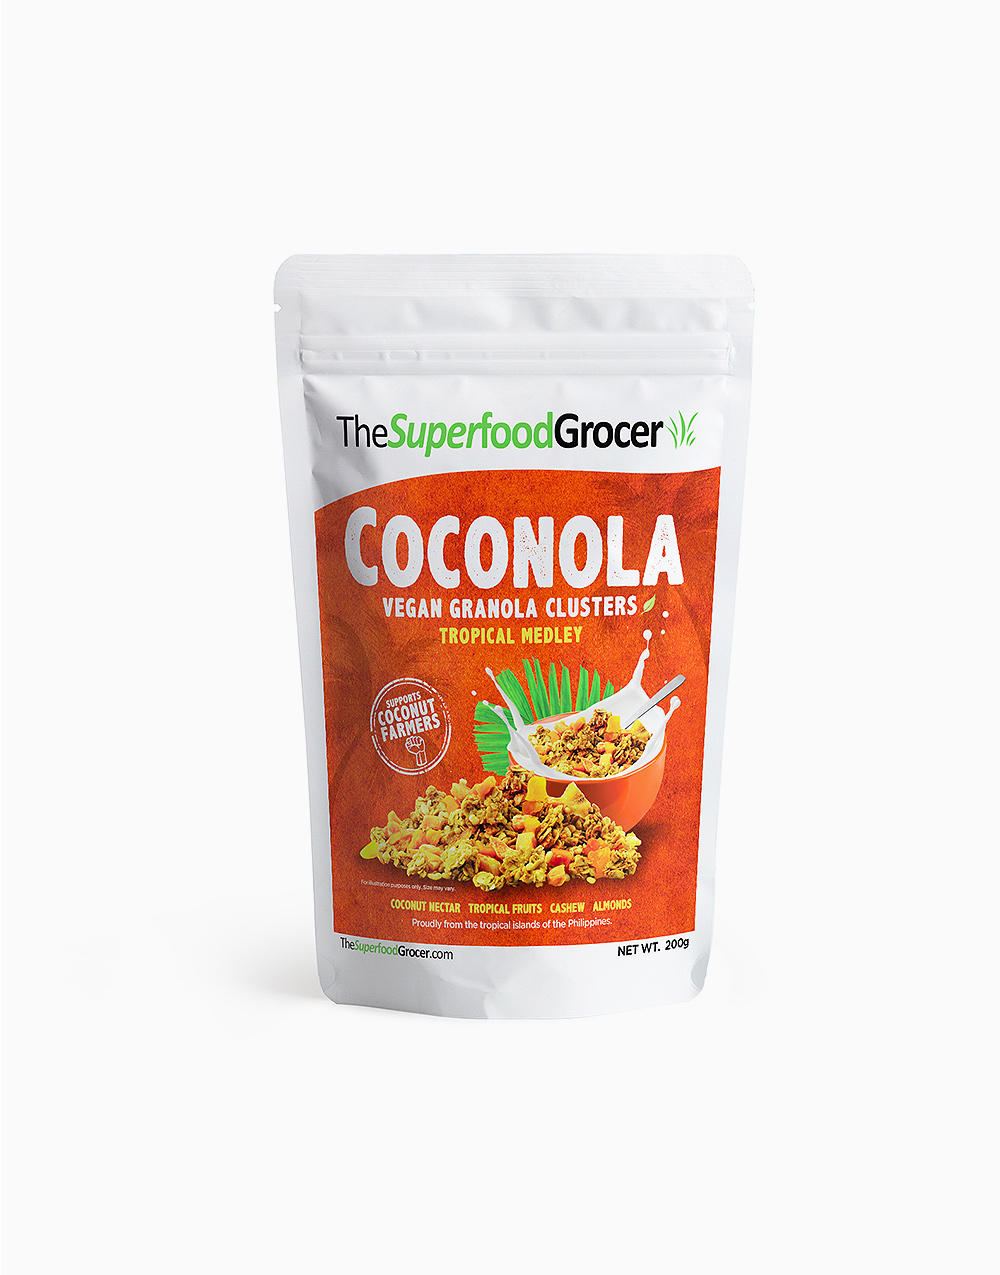 Coconola Vegan Granola Clusters Tropical Medley (200g) by The Superfood Grocer